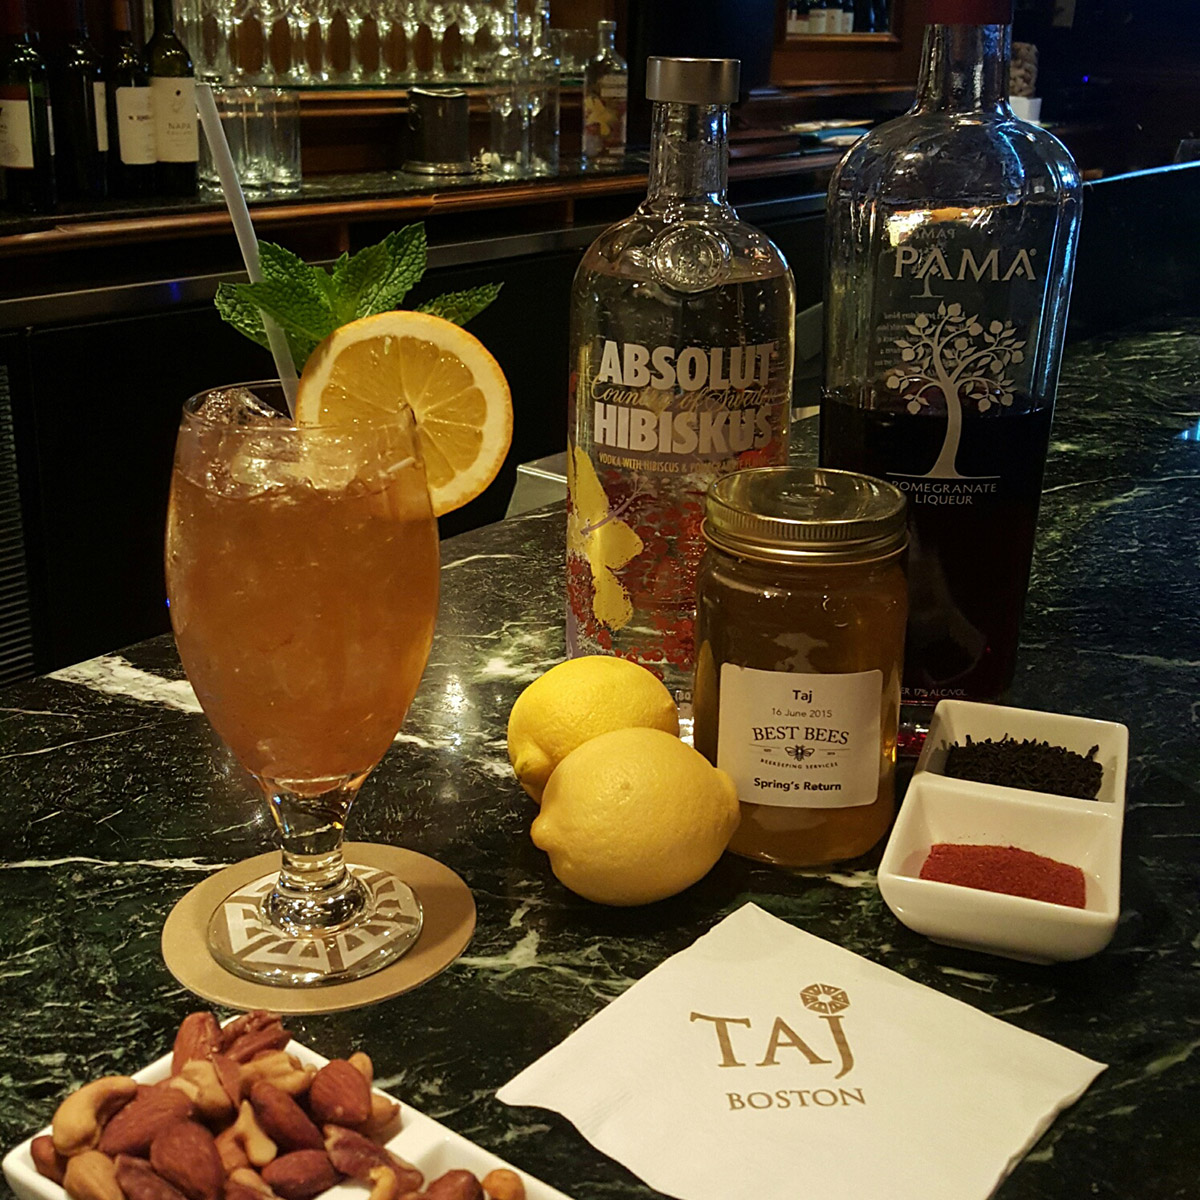 Churchill's Tea at Taj Boston